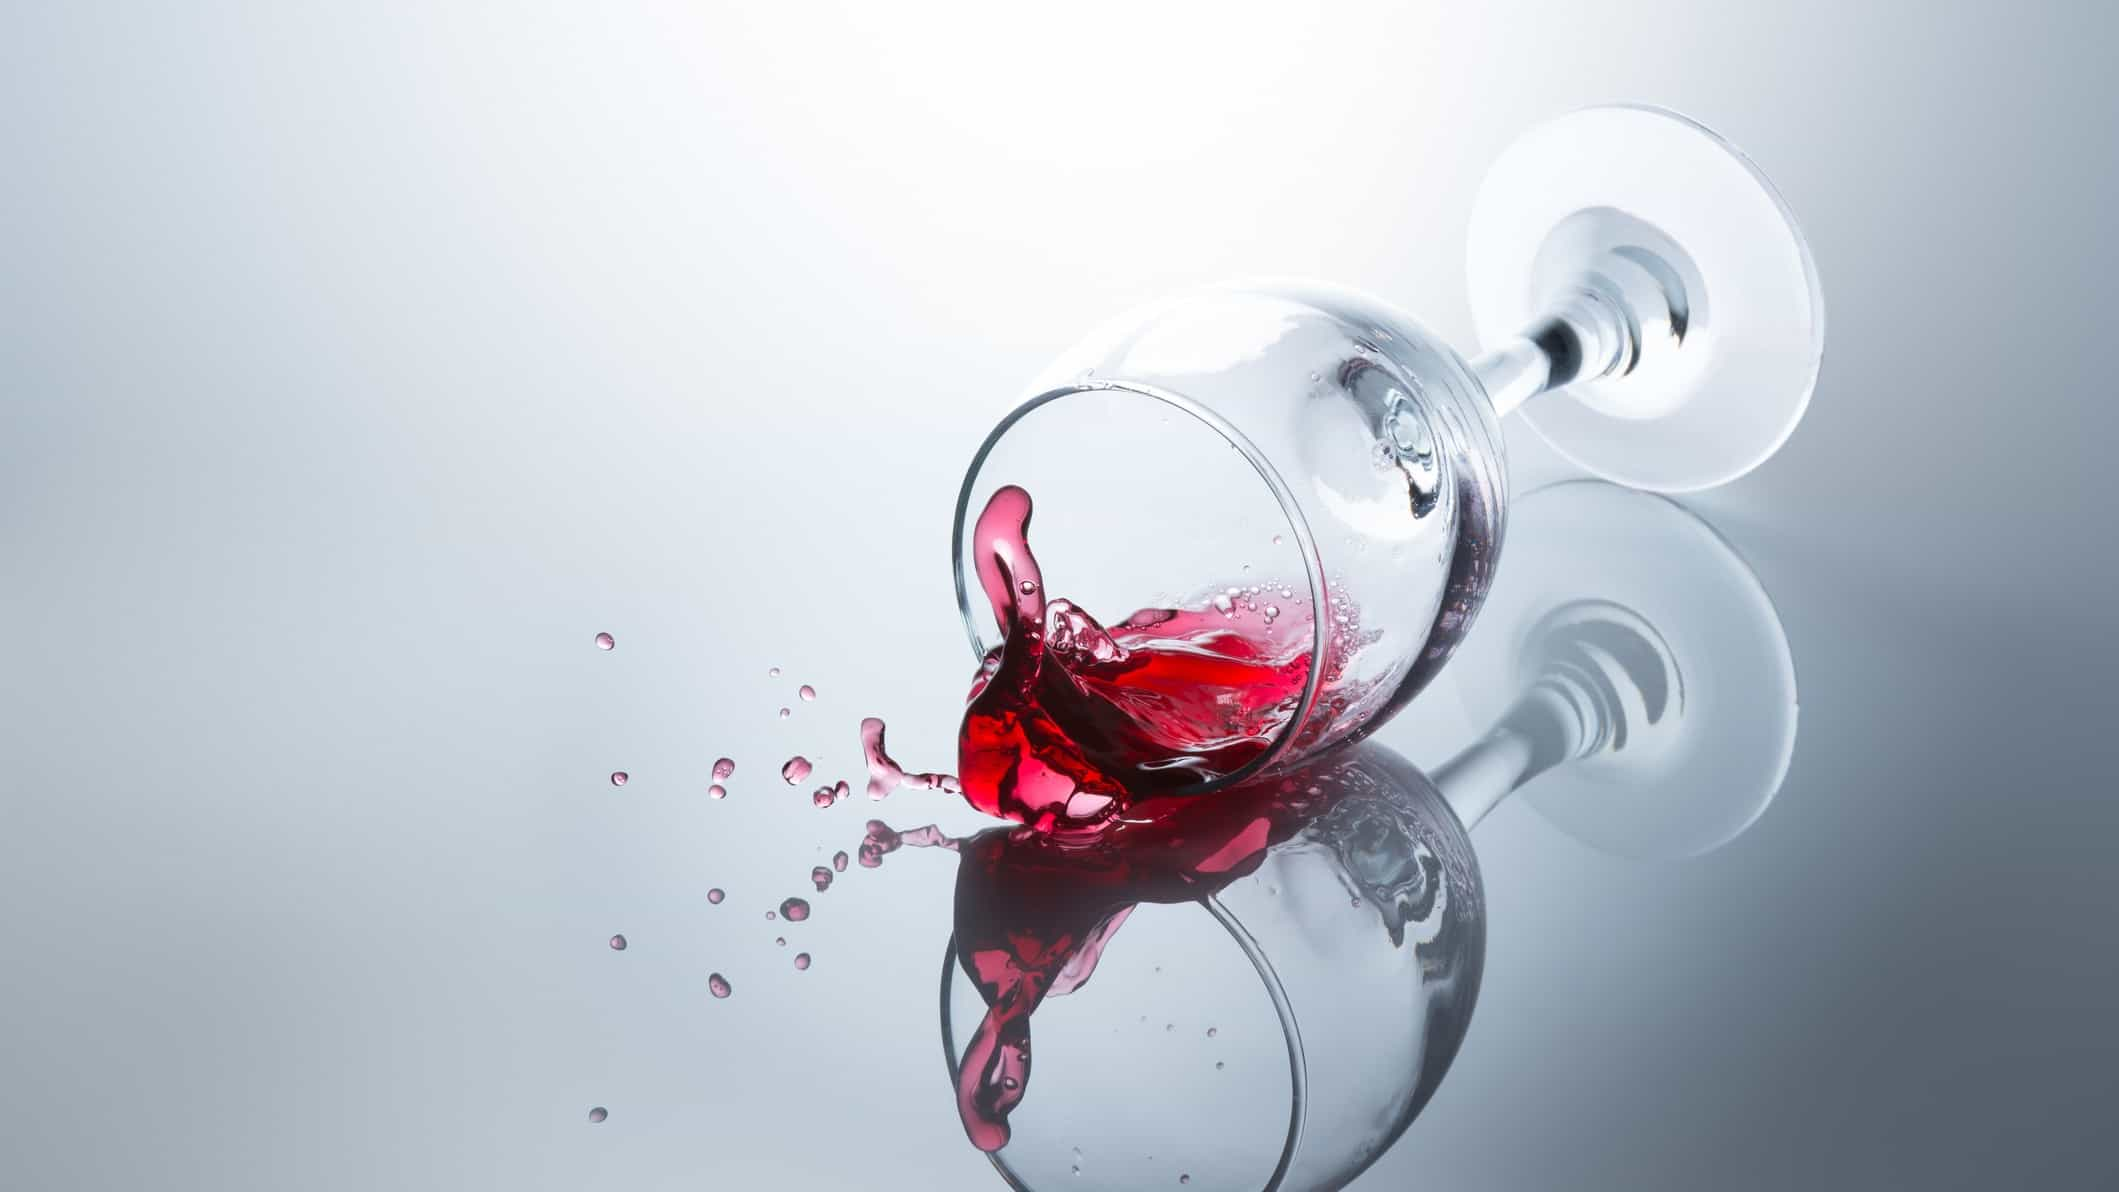 Spilled wine and a glass on its side, indicating a share price drop for ASX wine companies